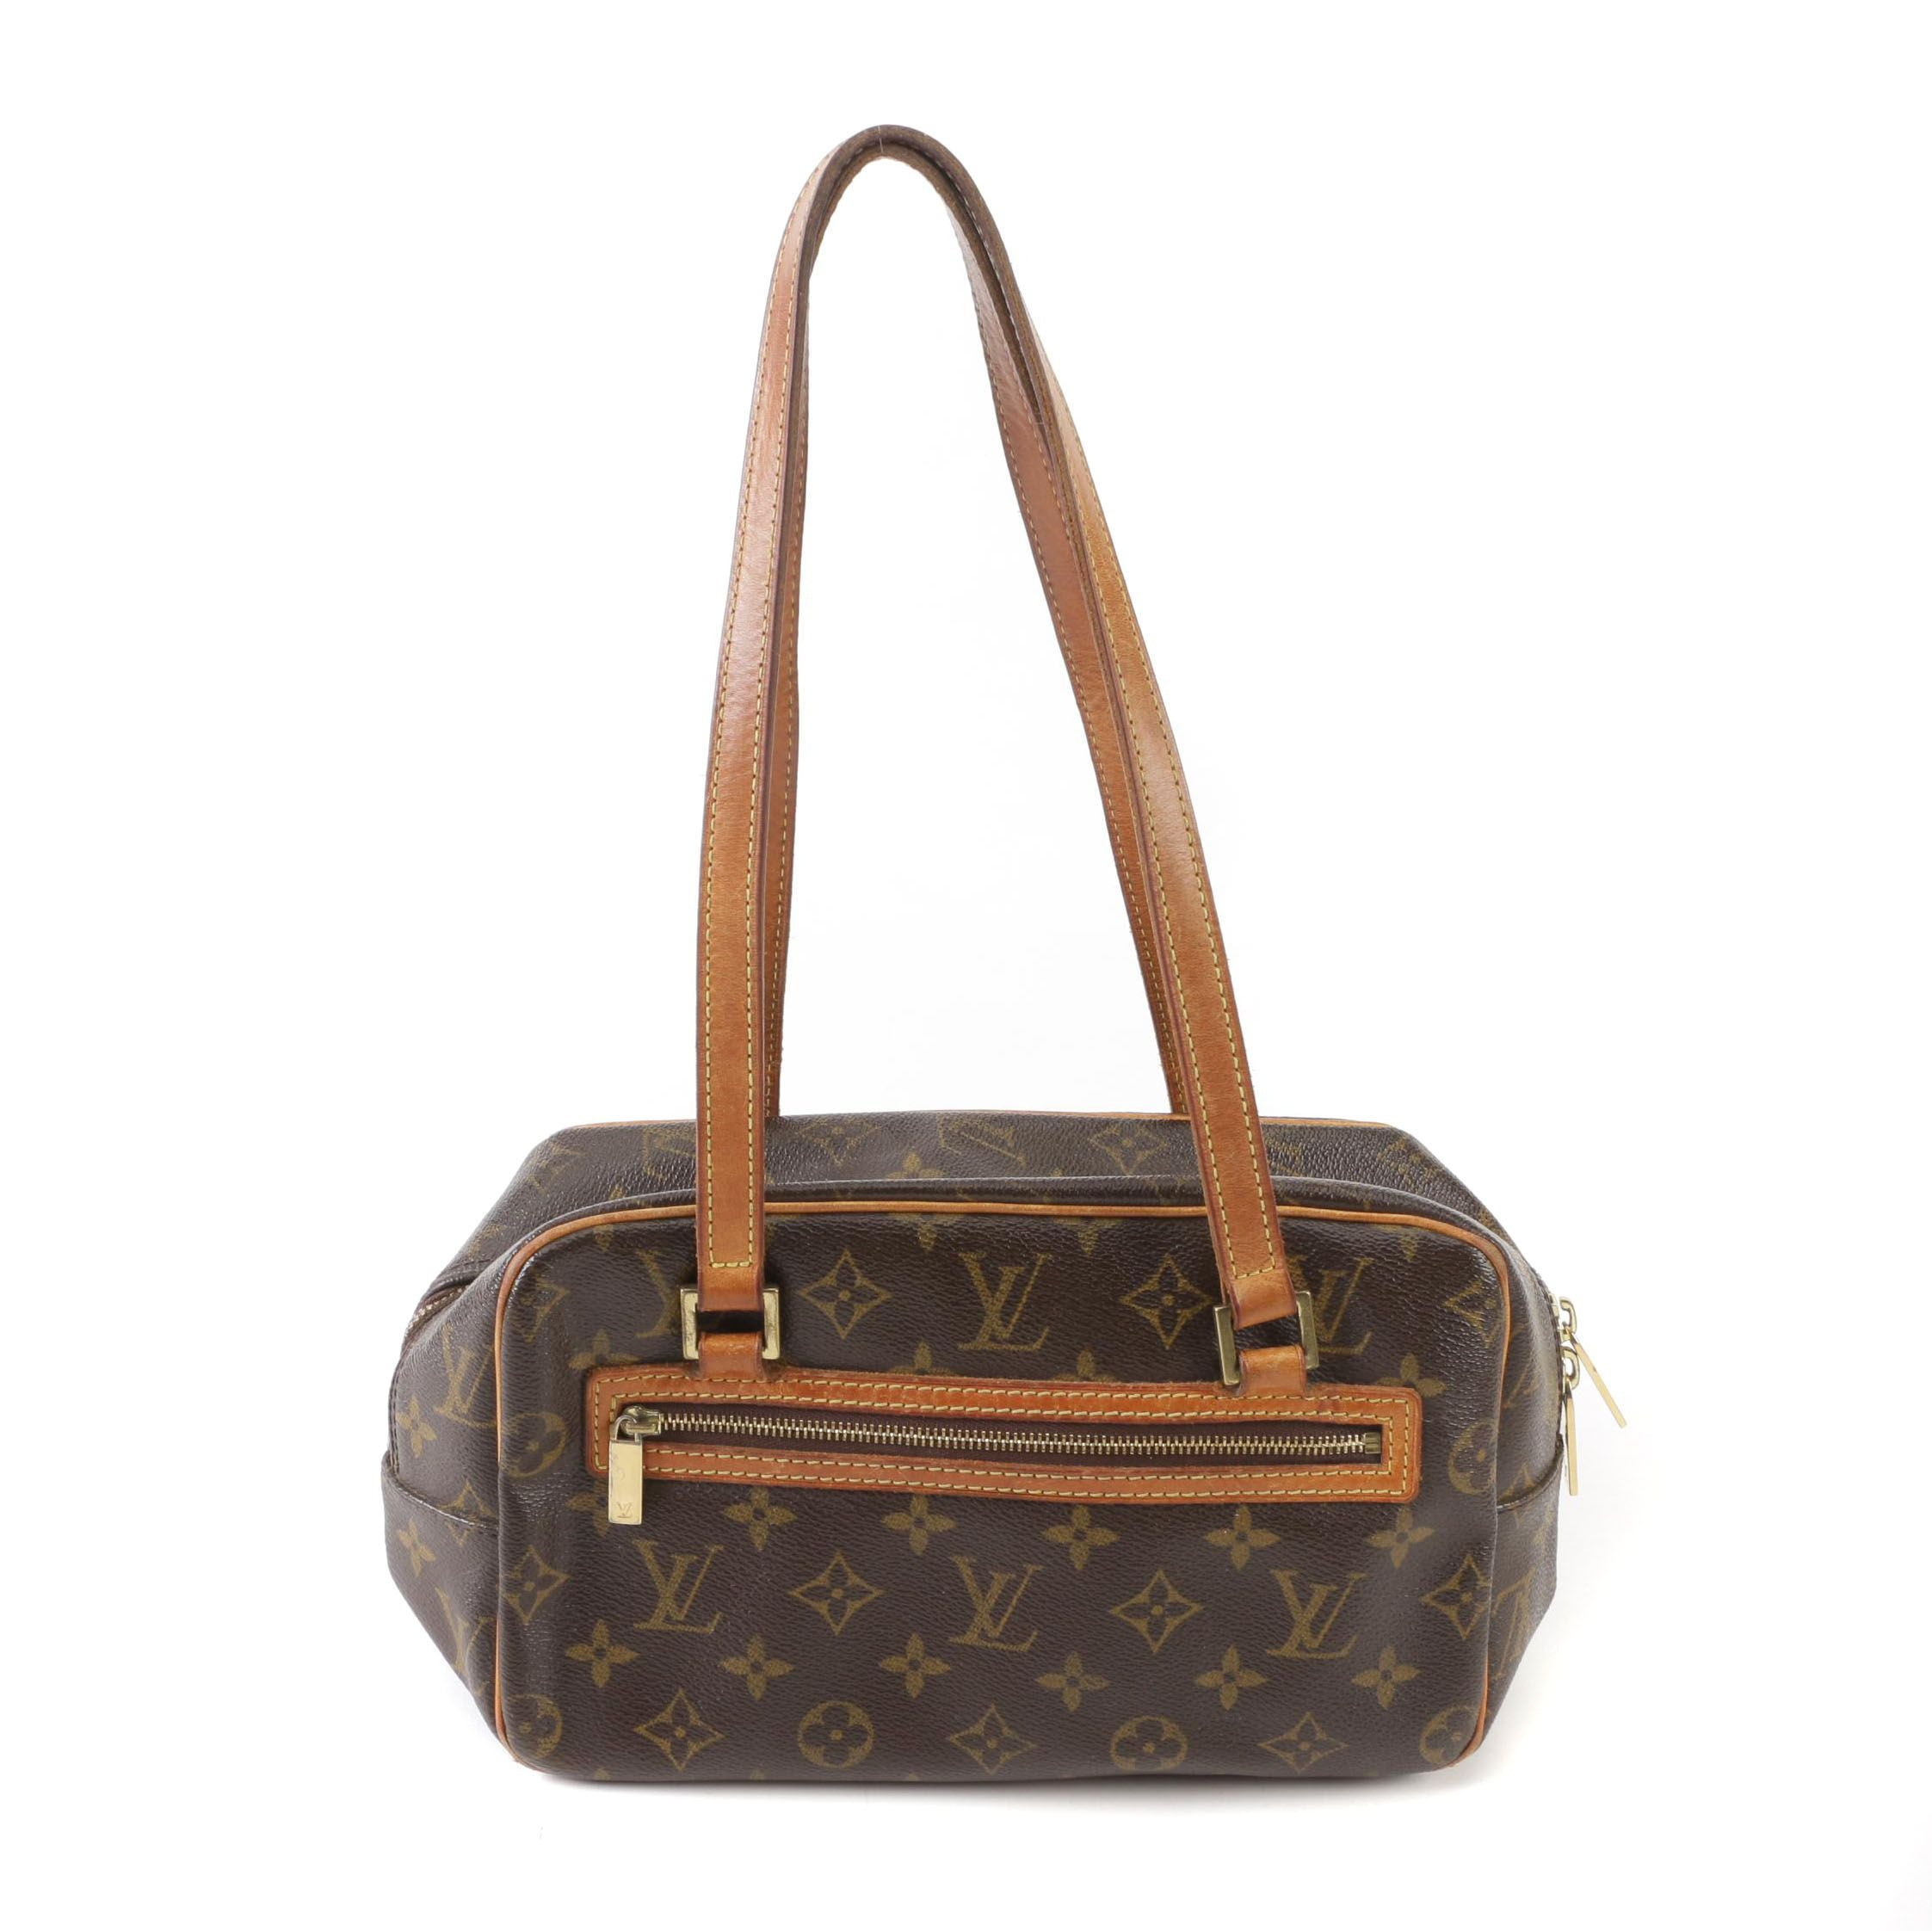 Louis Vuitton Paris Monogram Canvas and Vachetta Leather Cite Shoulder Bag, 2002